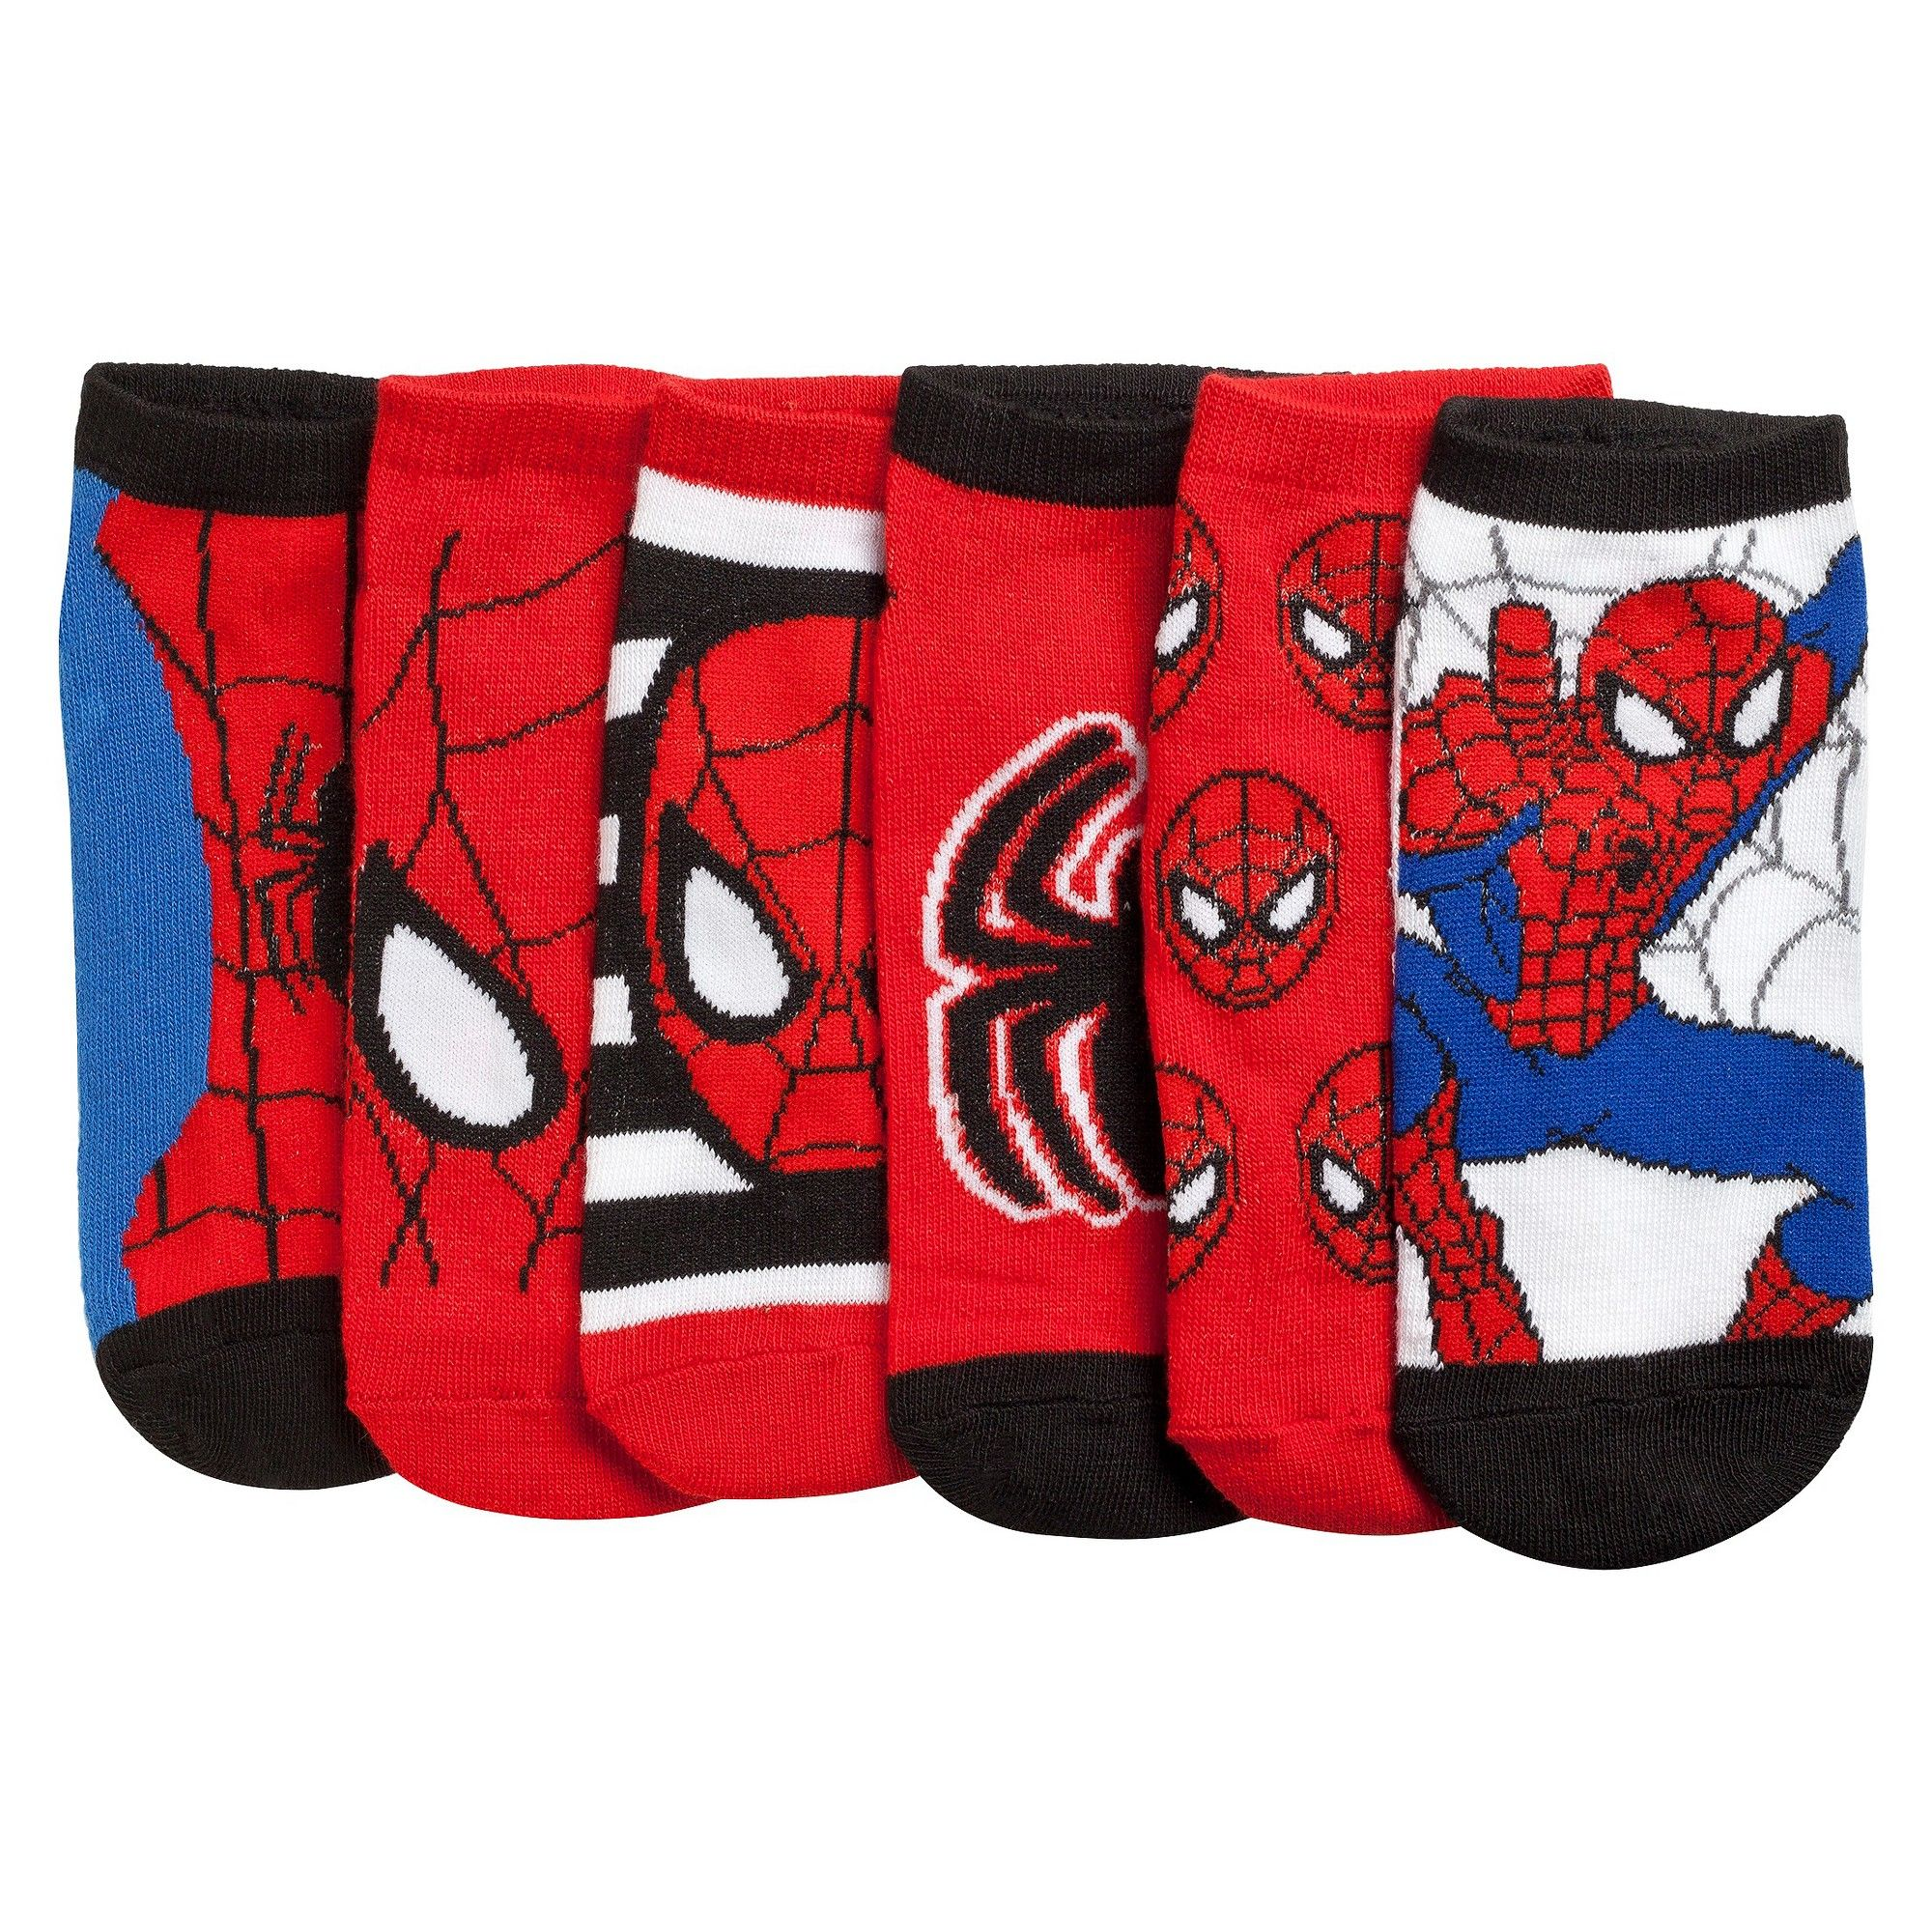 d107198146 Boys' 6-Pack Spider-Man Ankle Socks - Red L, Blue Multicolored ...